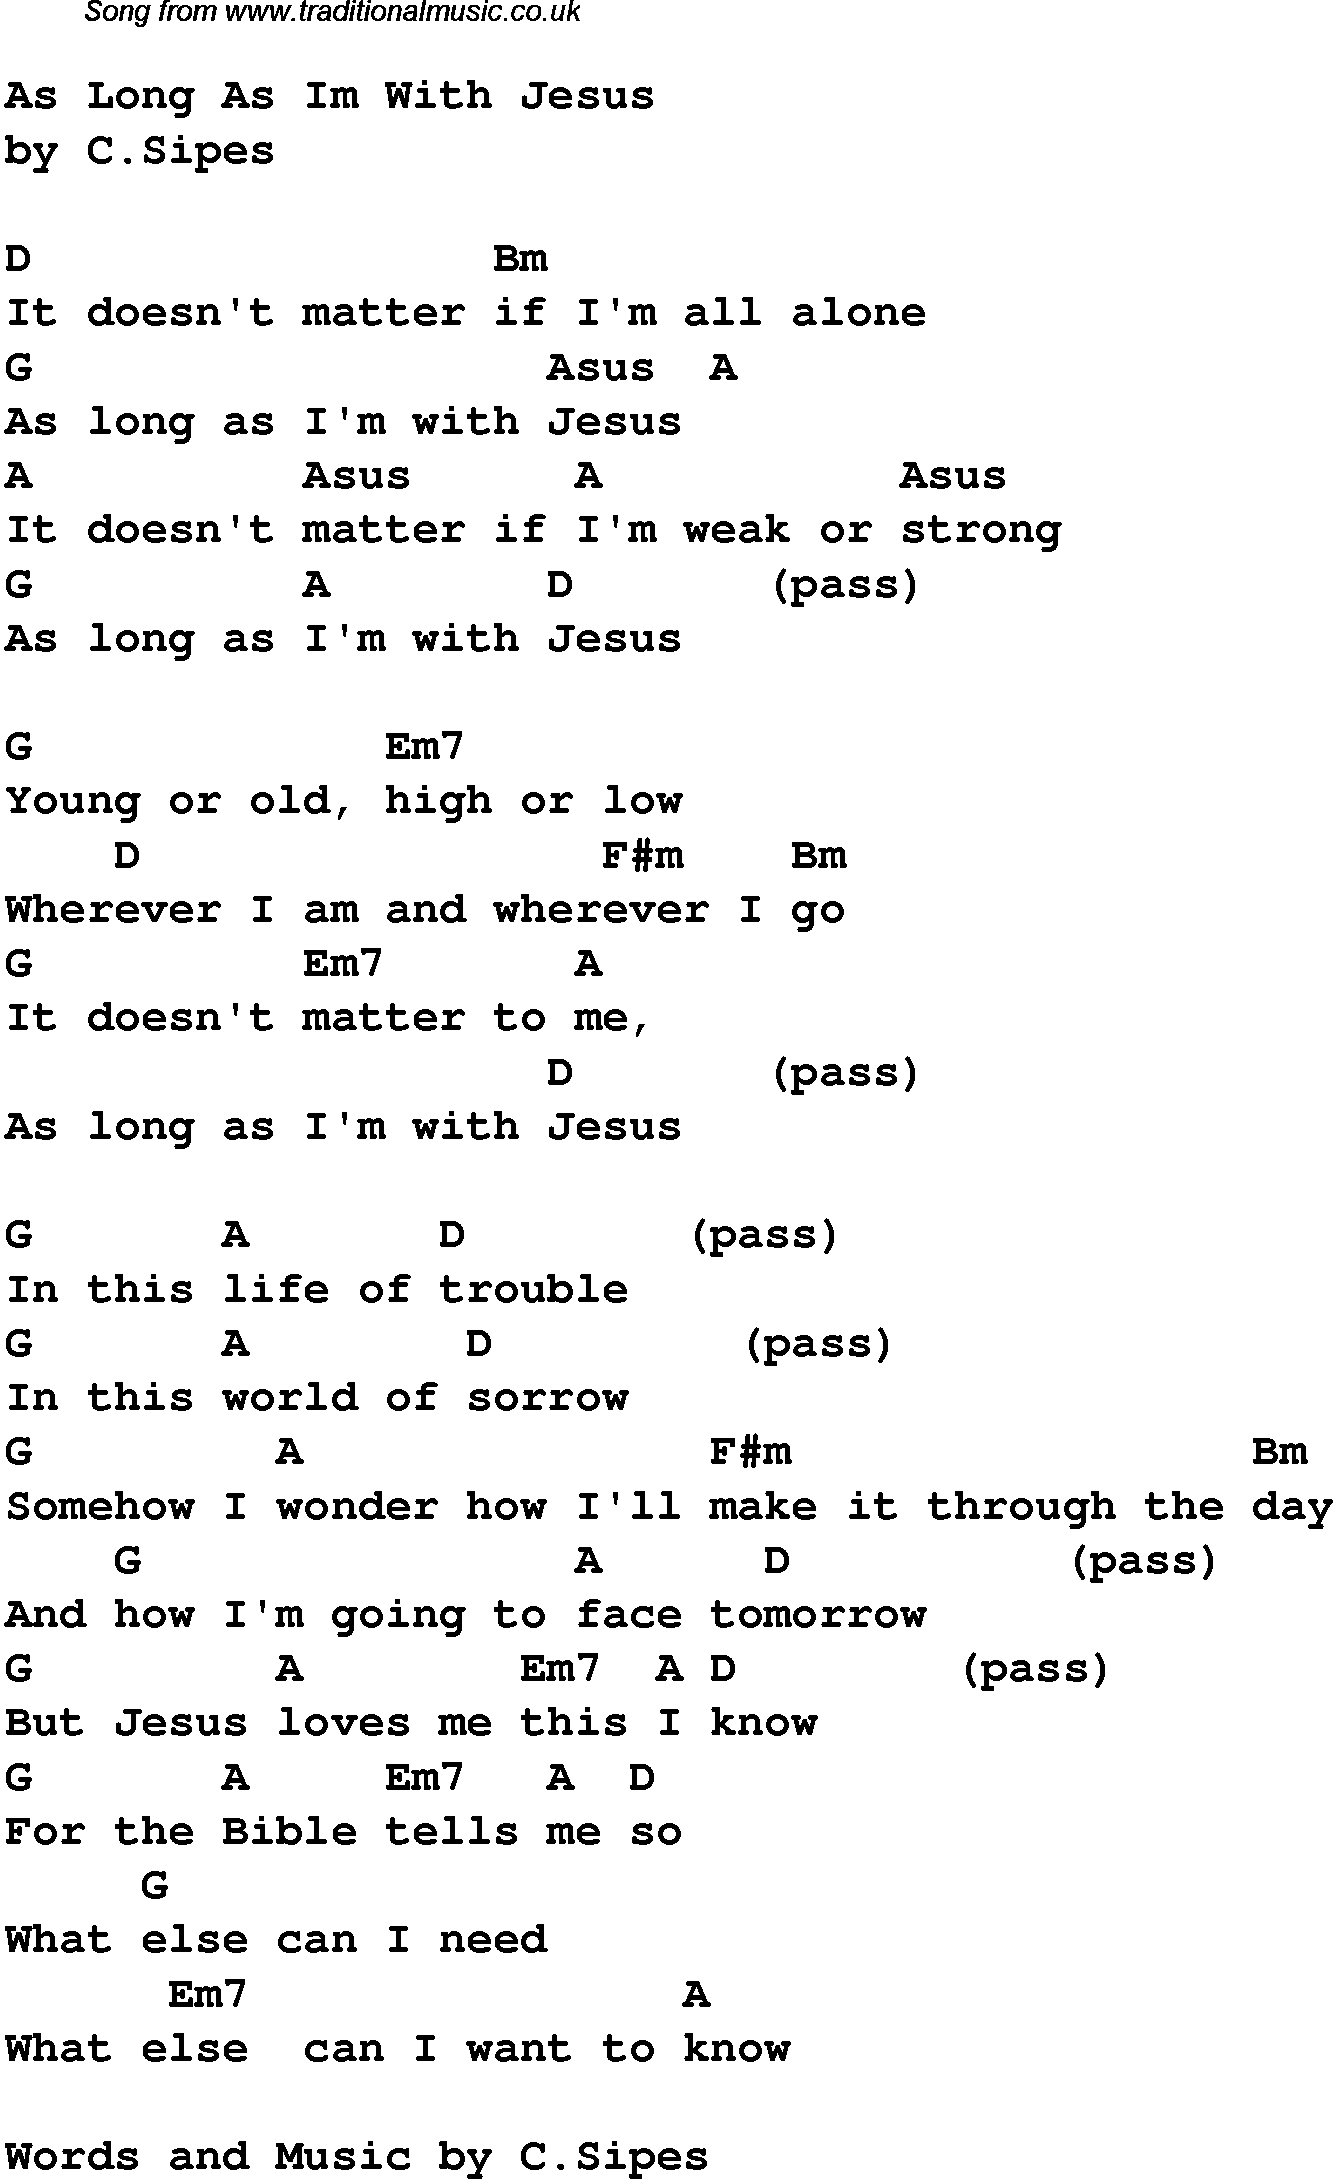 Contemporary Christian Music, Worship Lyrics & Chords For: As Long - Free Printable Lyrics To Christian Songs